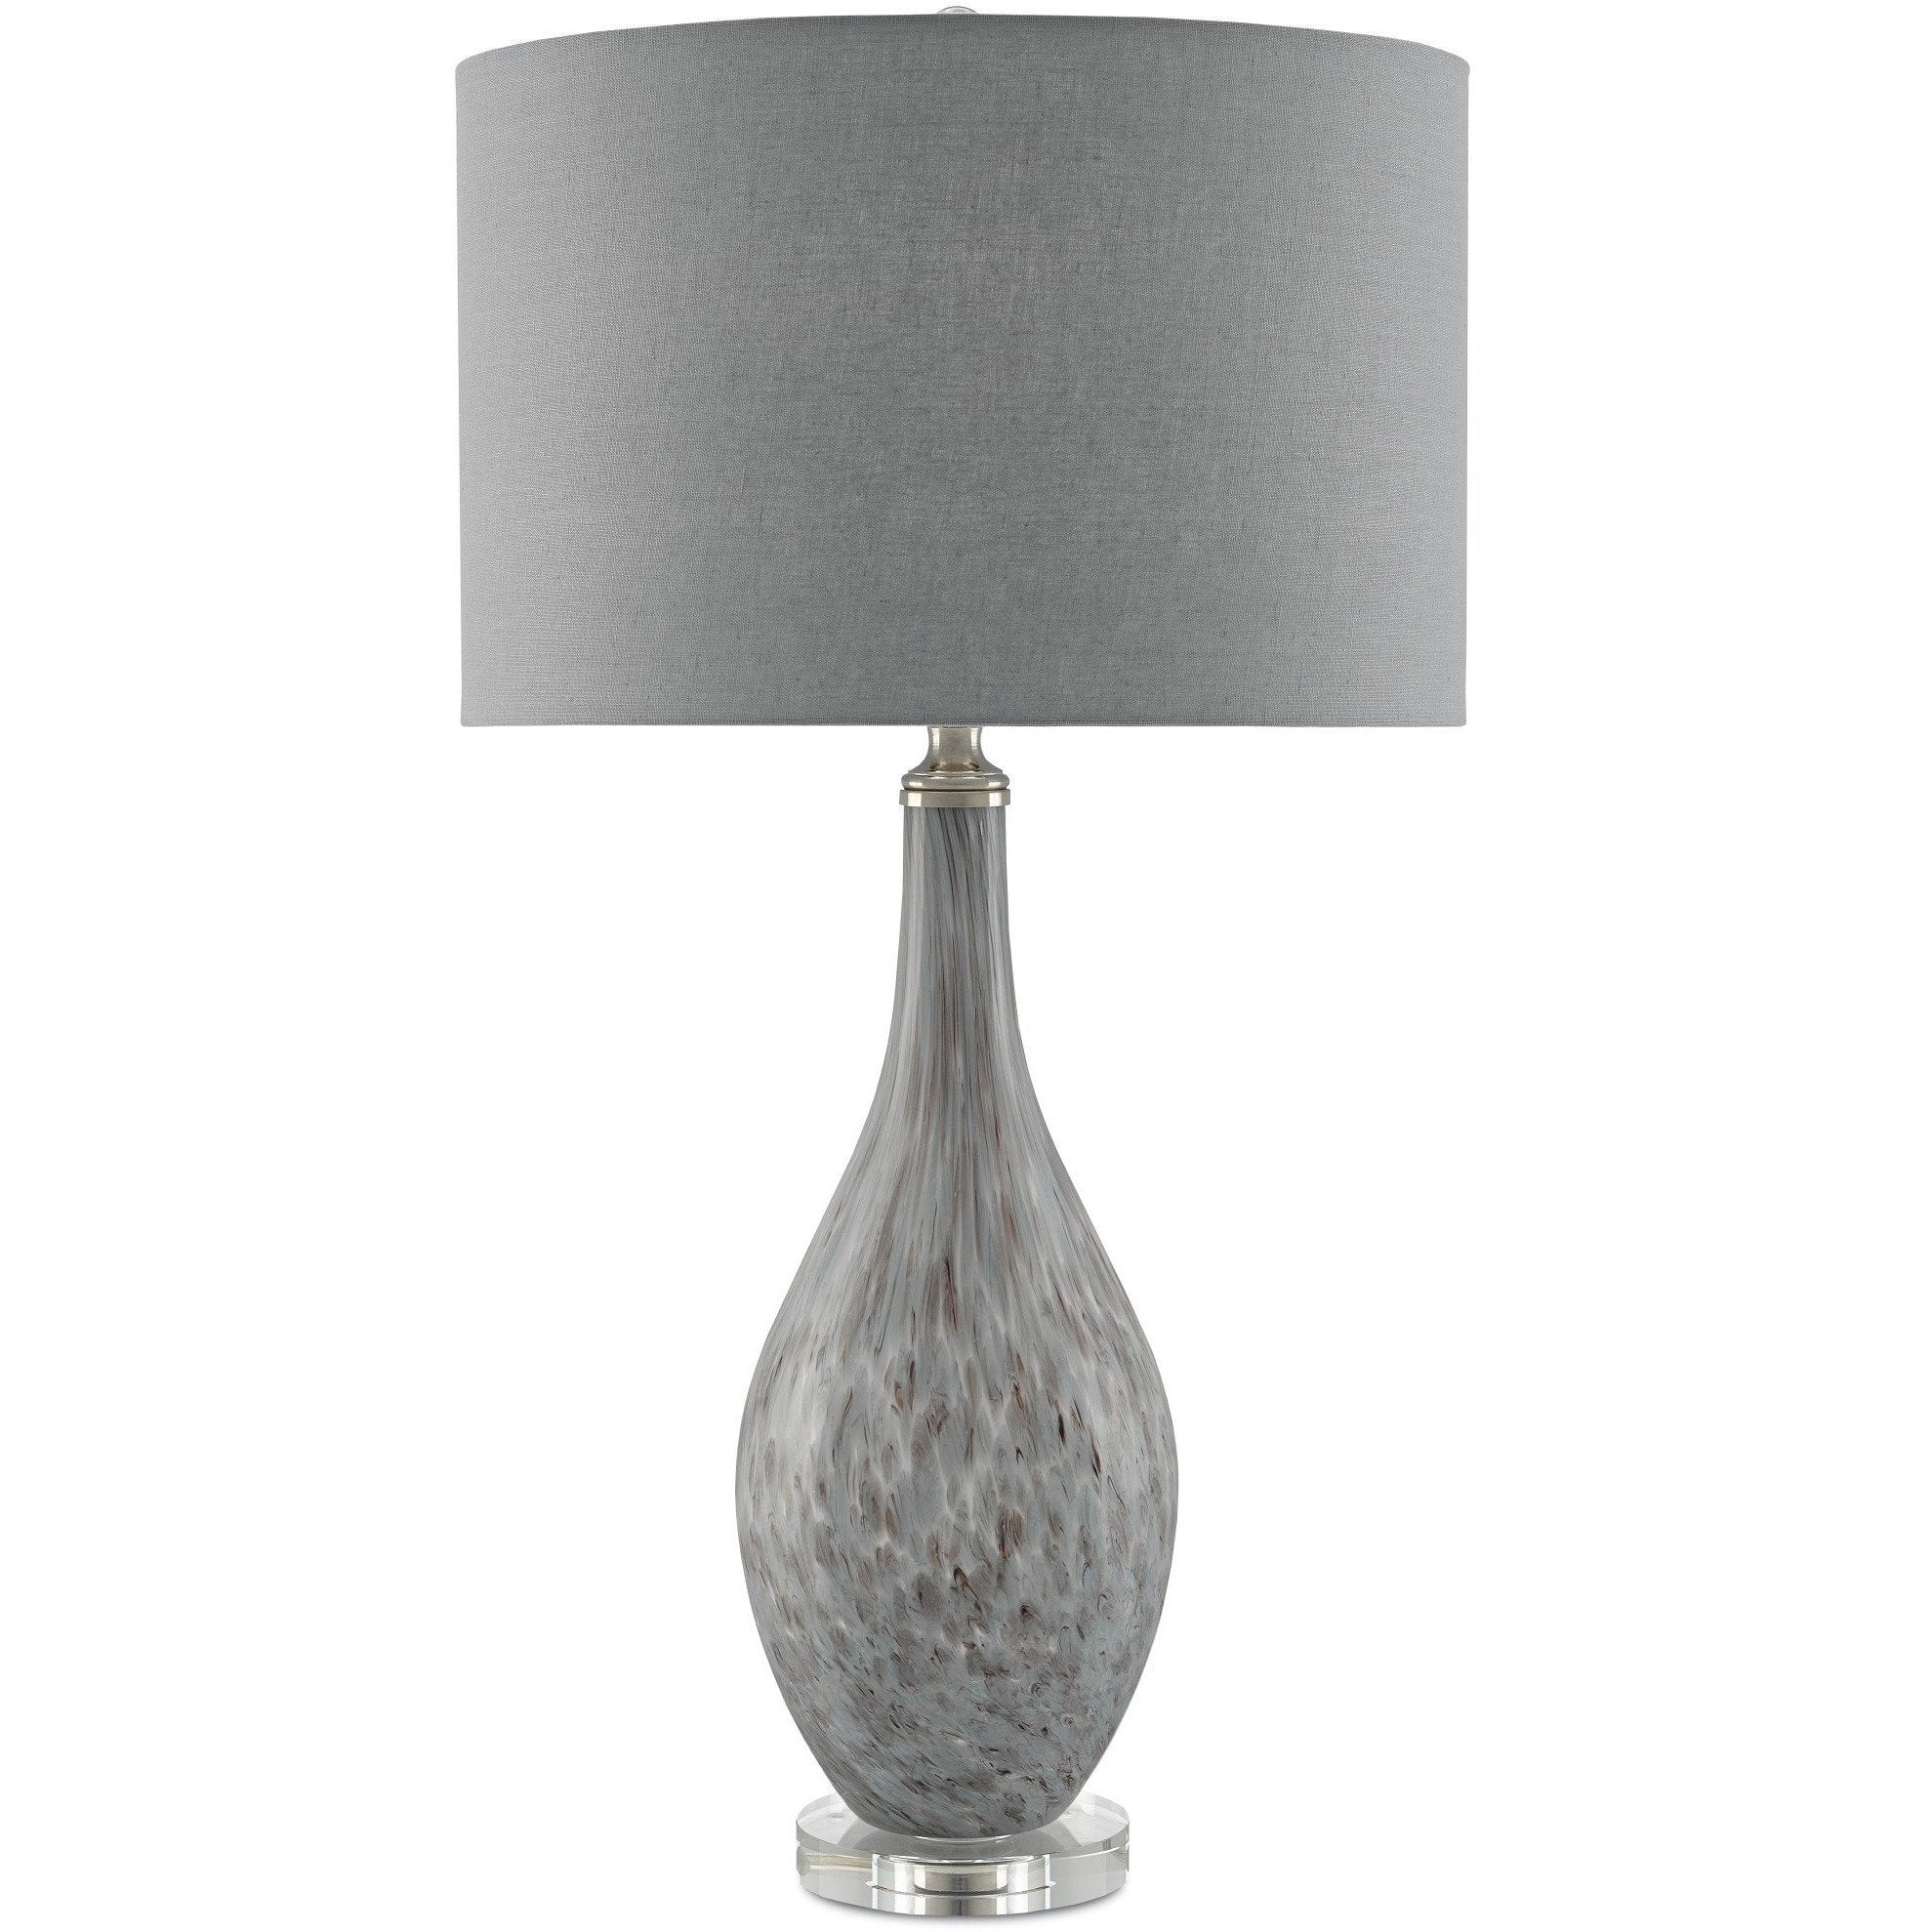 Currey and company lupo table lamp 6000 0177 lovecup currey and company lupo table lamp 6000 0177 lovecup arubaitofo Gallery